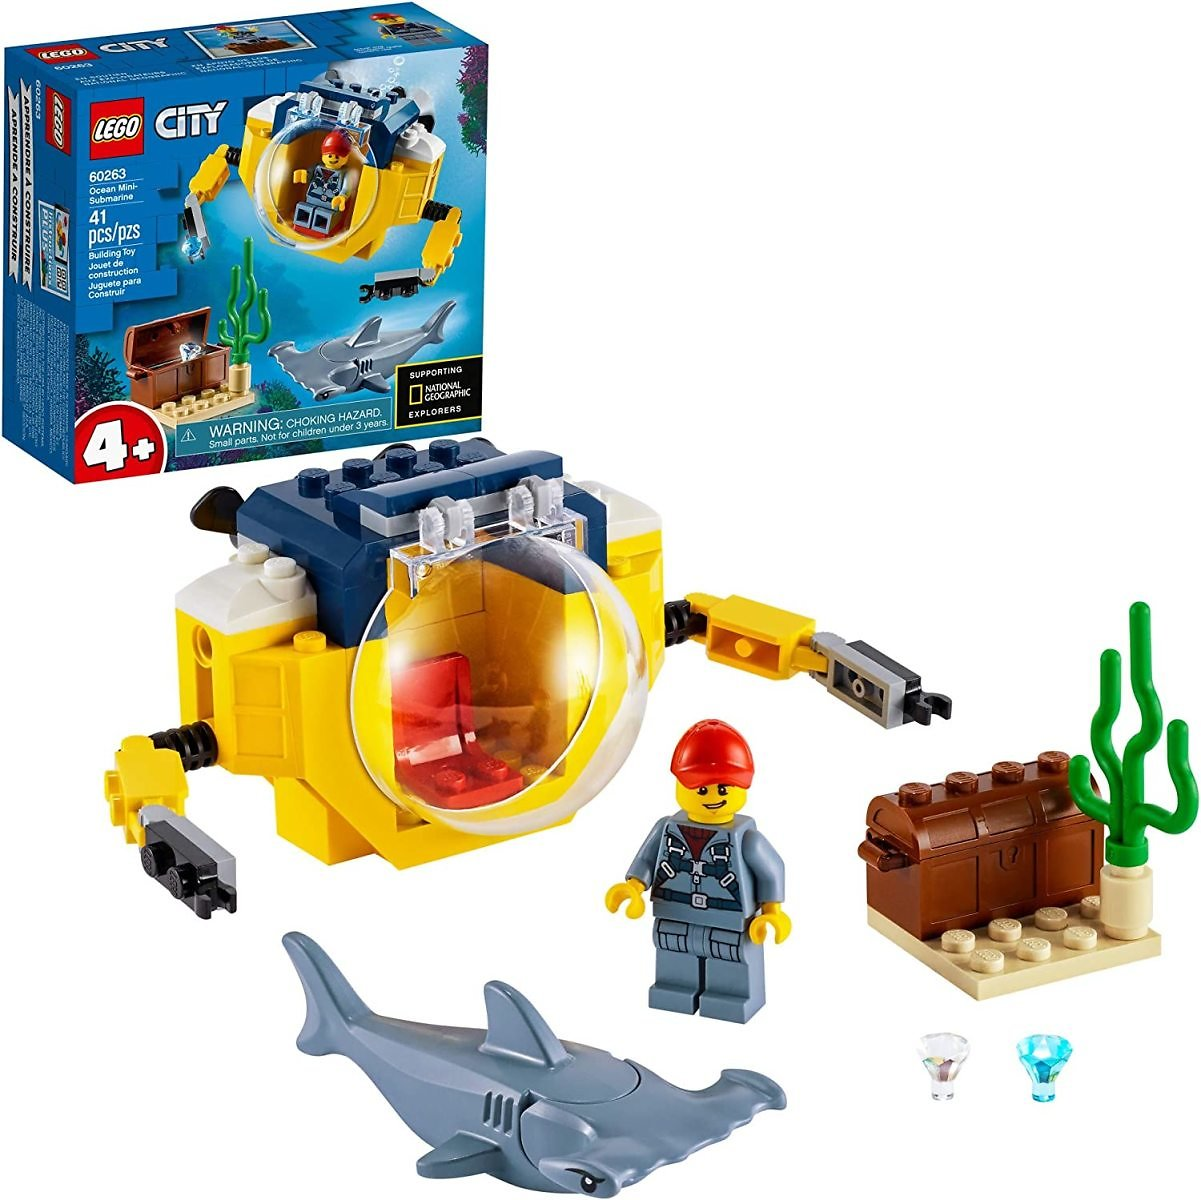 LEGO City Ocean Mini-Submarine 60263, New 2020 (41 Pieces)